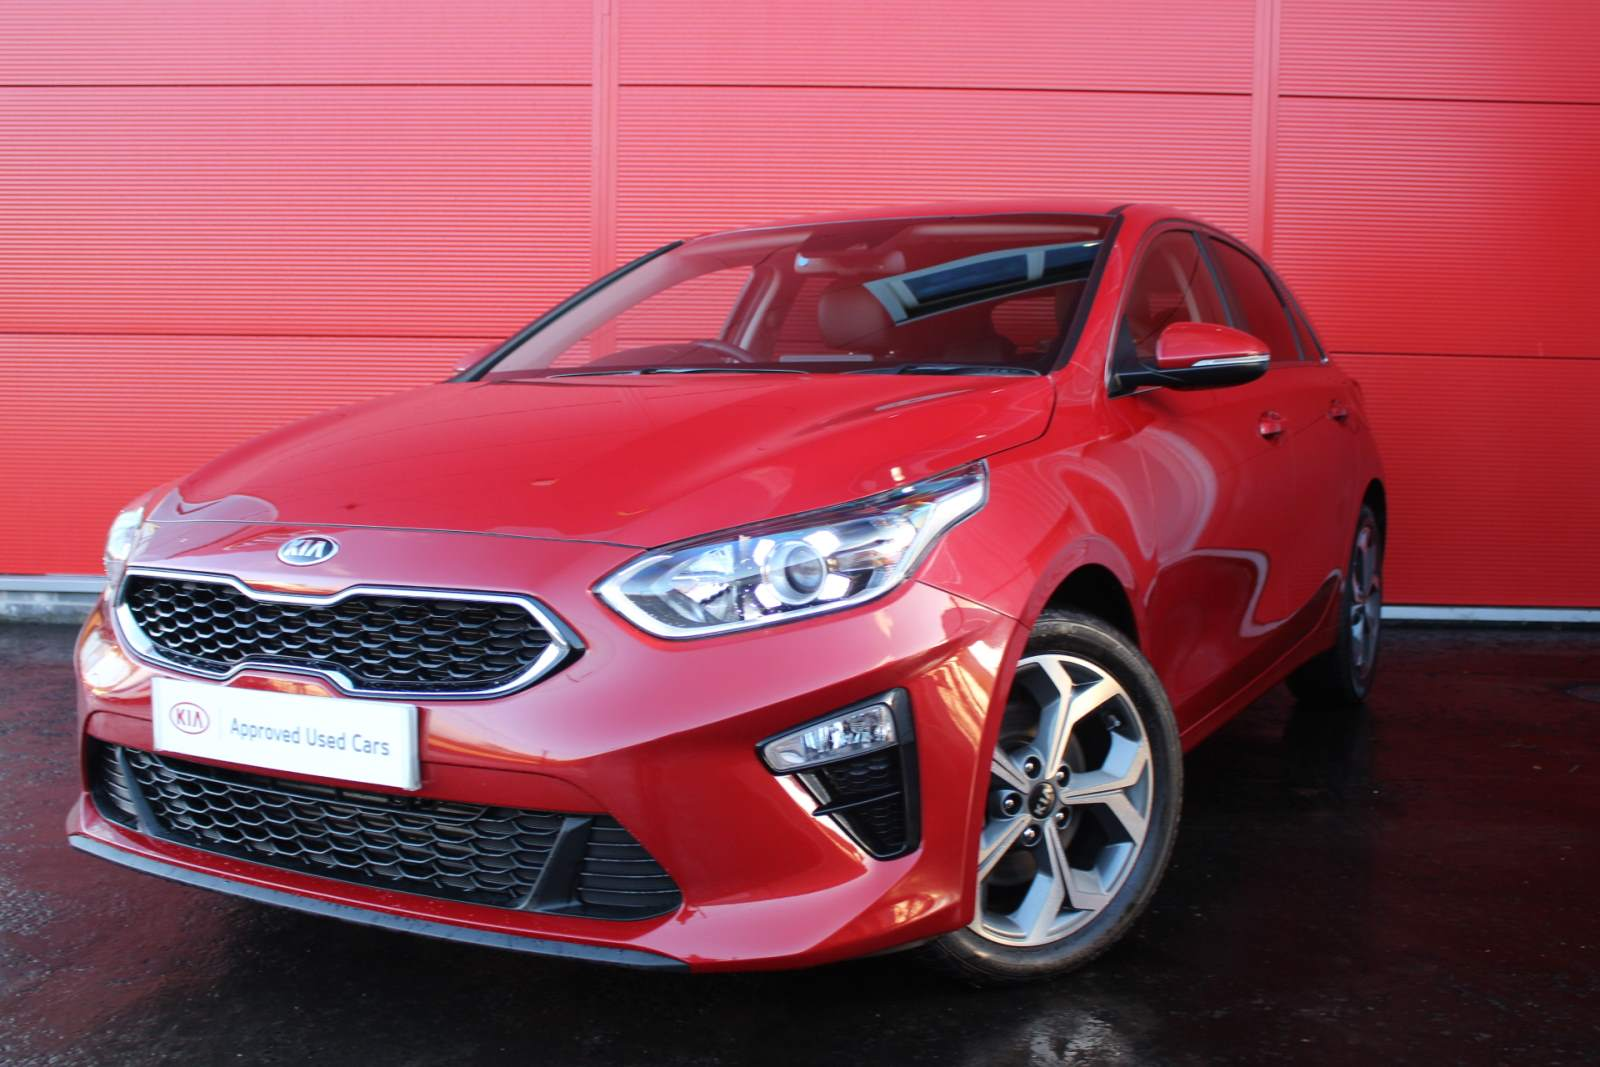 Kia CEED 3 1.6 CRDI ISG S-AUTO FULL KIA WARRANTY UNTIL FEB 2027